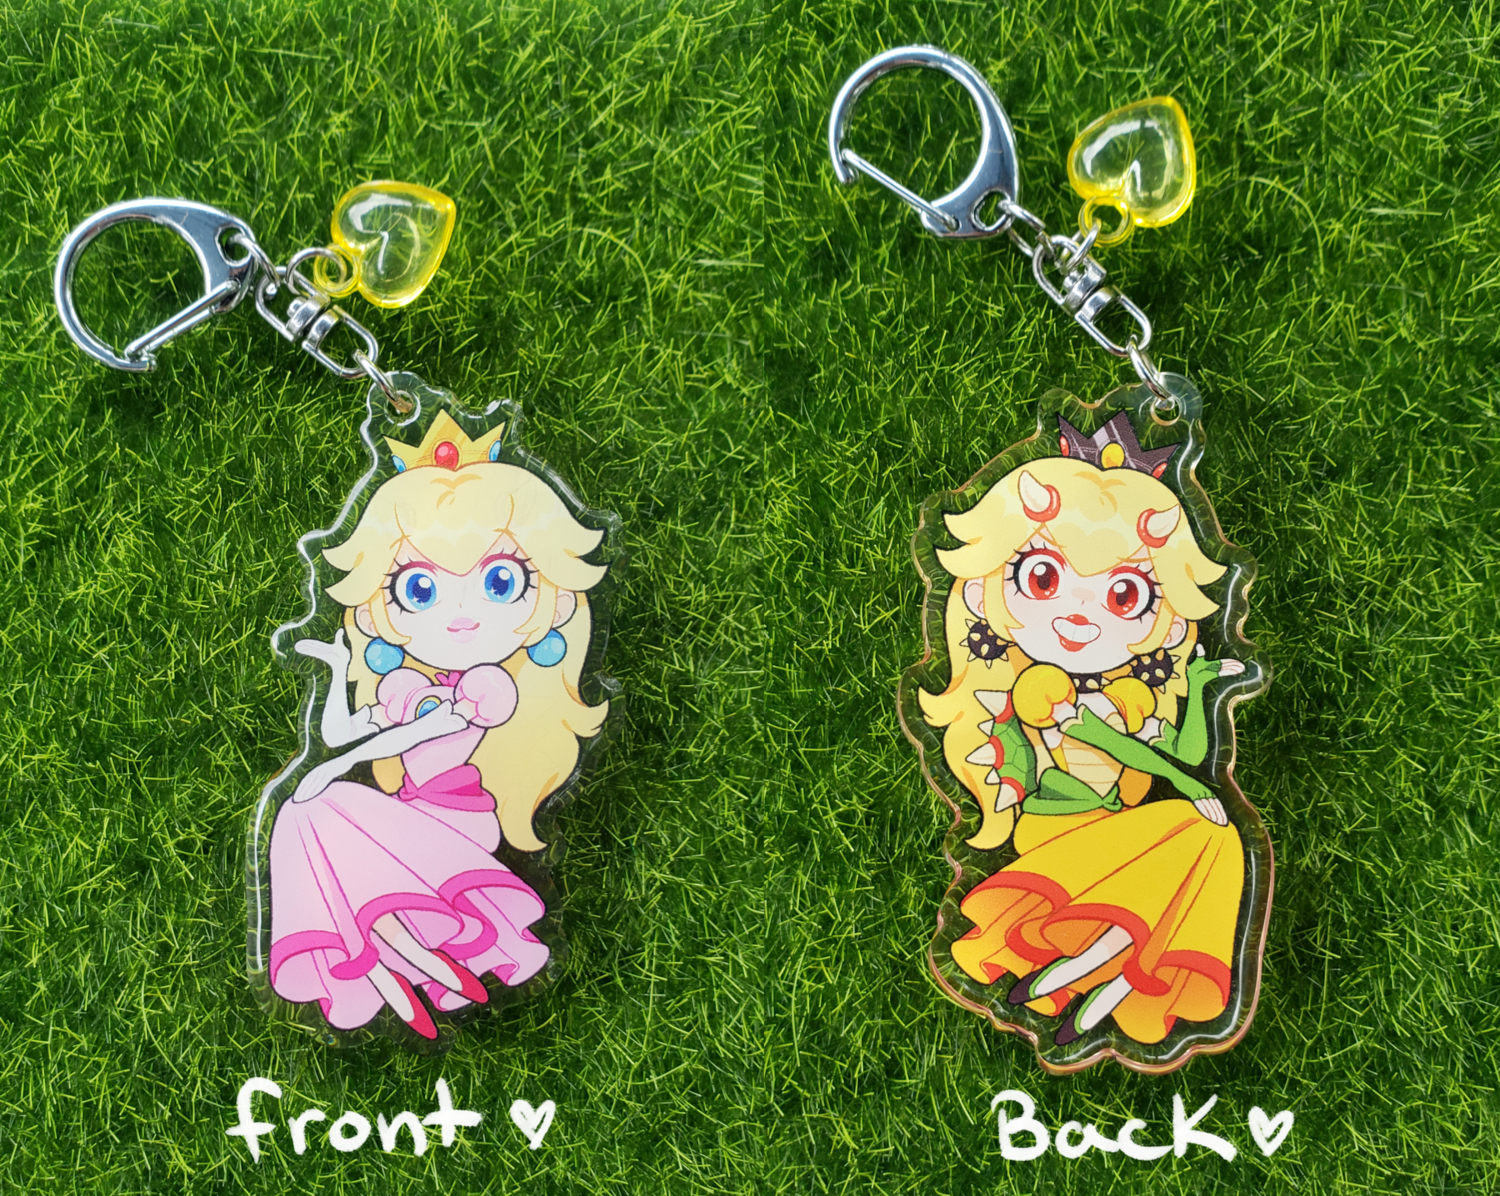 Princess Peach/Bowsette Charm